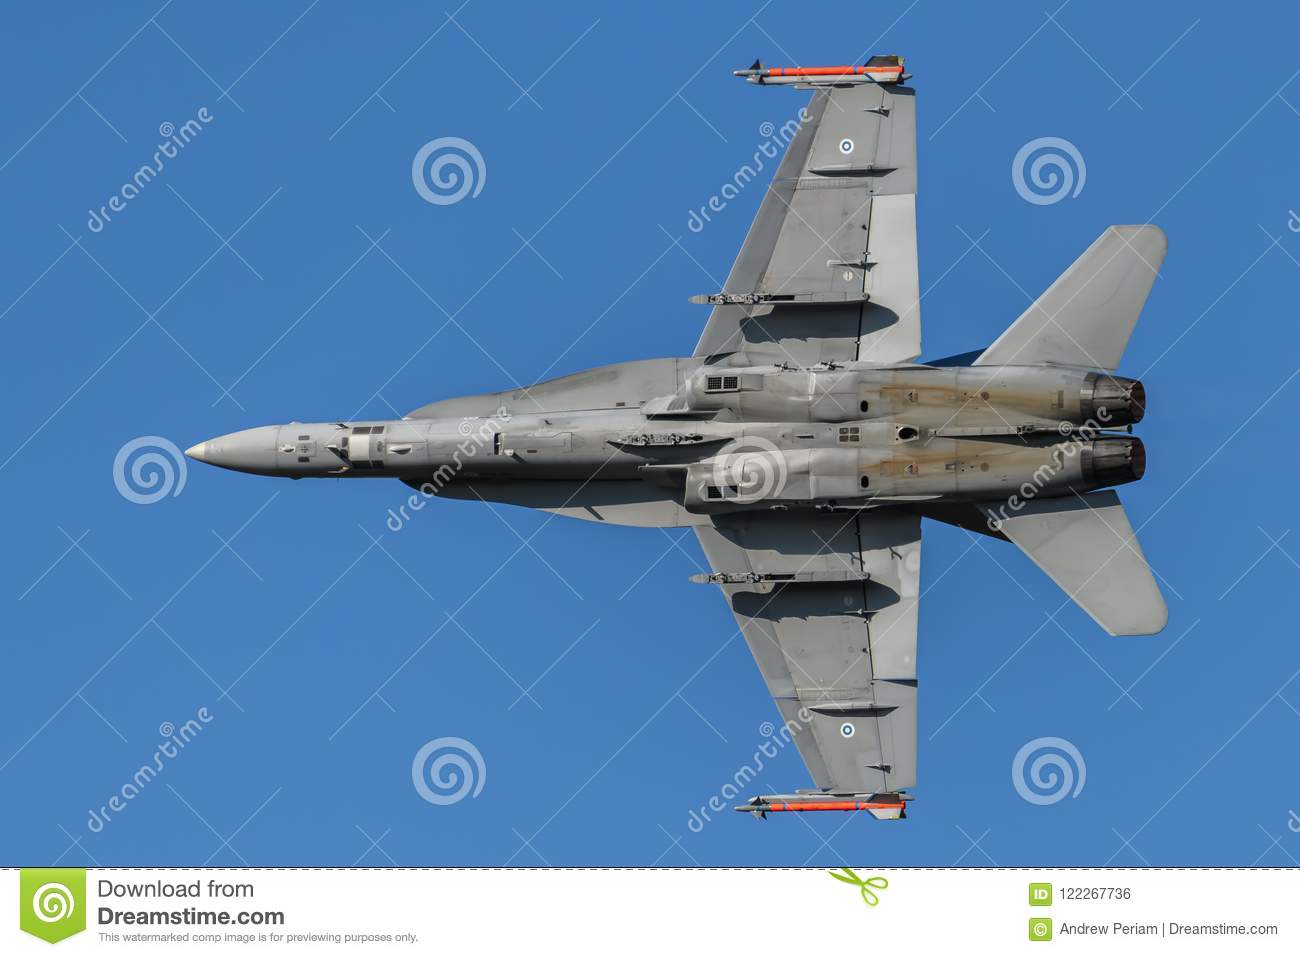 hight resolution of finland air force f18 hornet jet aircraft